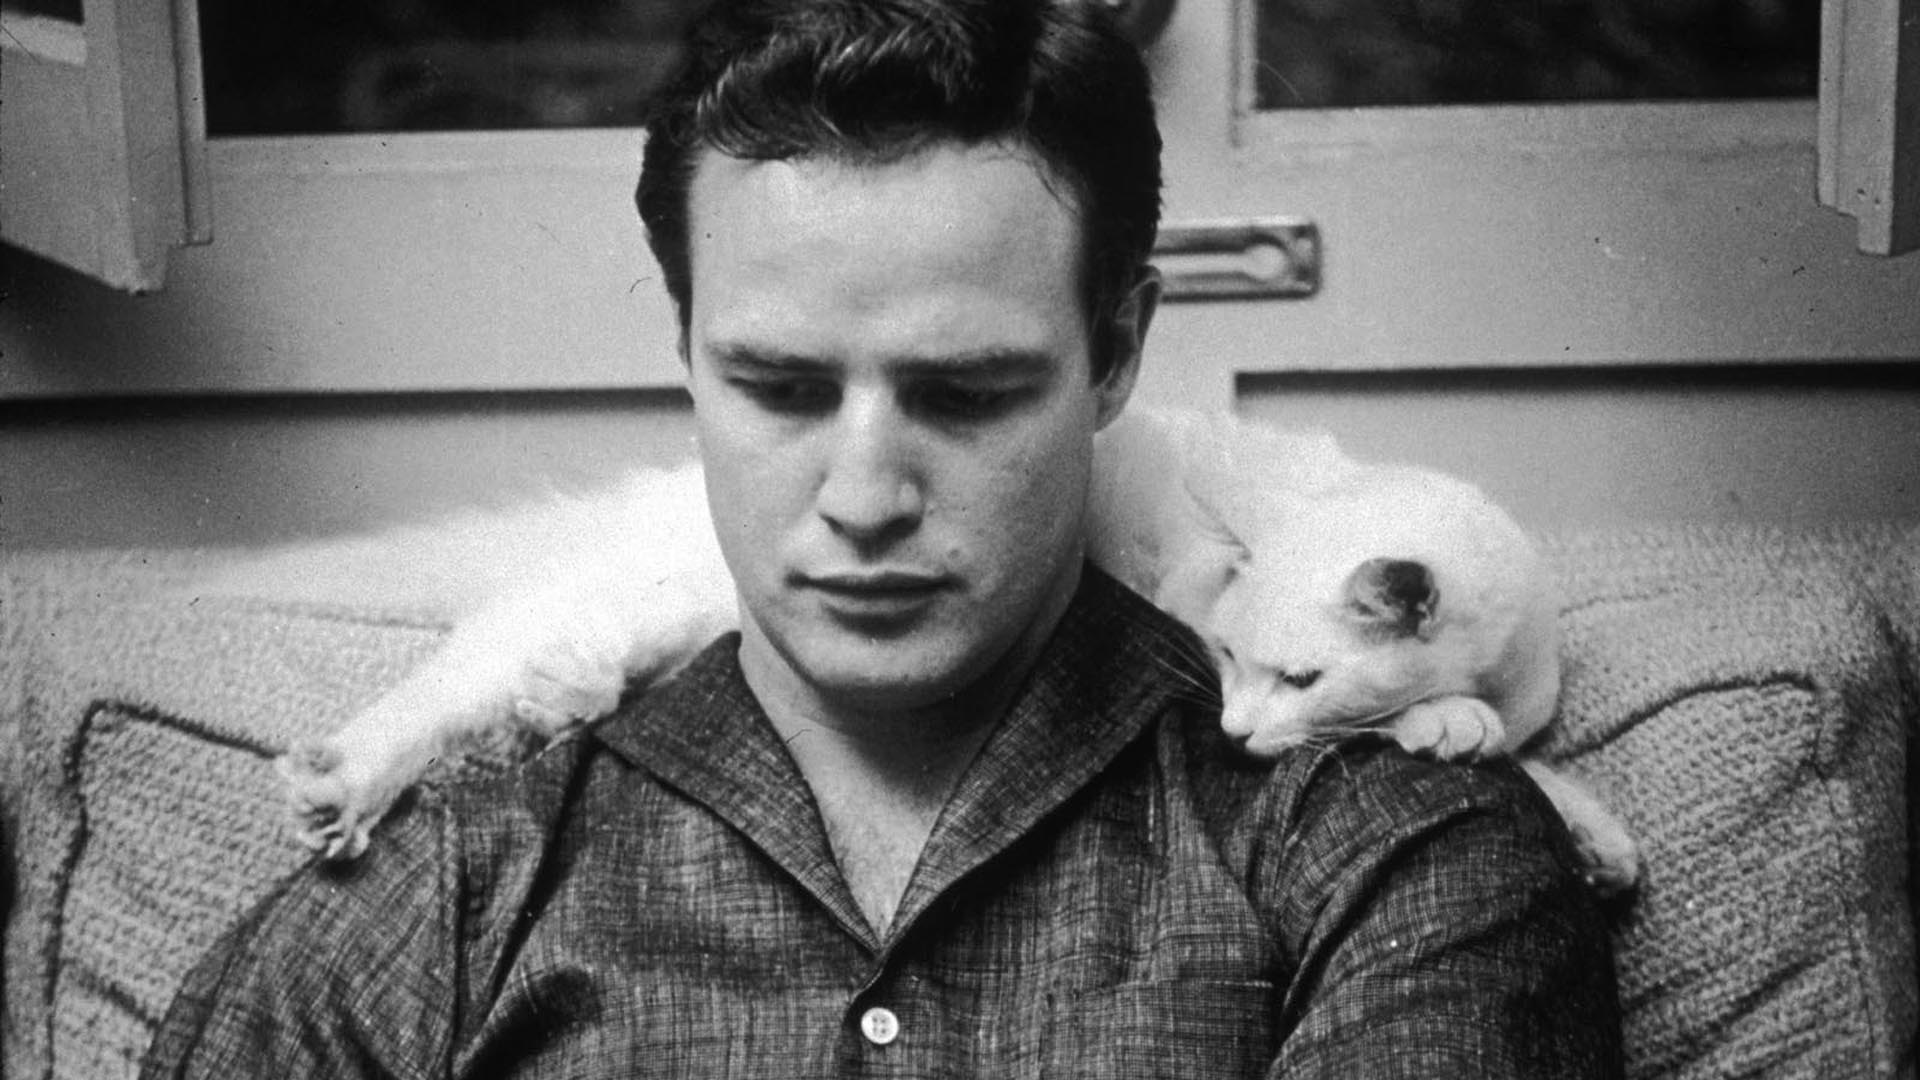 marlon brando wifemarlon brando gif, marlon brando 2004, marlon brando wiki, marlon brando old, marlon brando films, marlon brando wikipedia, marlon brando movies, marlon brando 2003, marlon brando wife, marlon brando kinopoisk, marlon brando documentary, marlon brando dolce gabbana, marlon brando oscar, marlon brando tumblr, marlon brando island, marlon brando larry king, marlon brando was perhaps, marlon brando vk, марлон брандо фото, marlon brando imdb